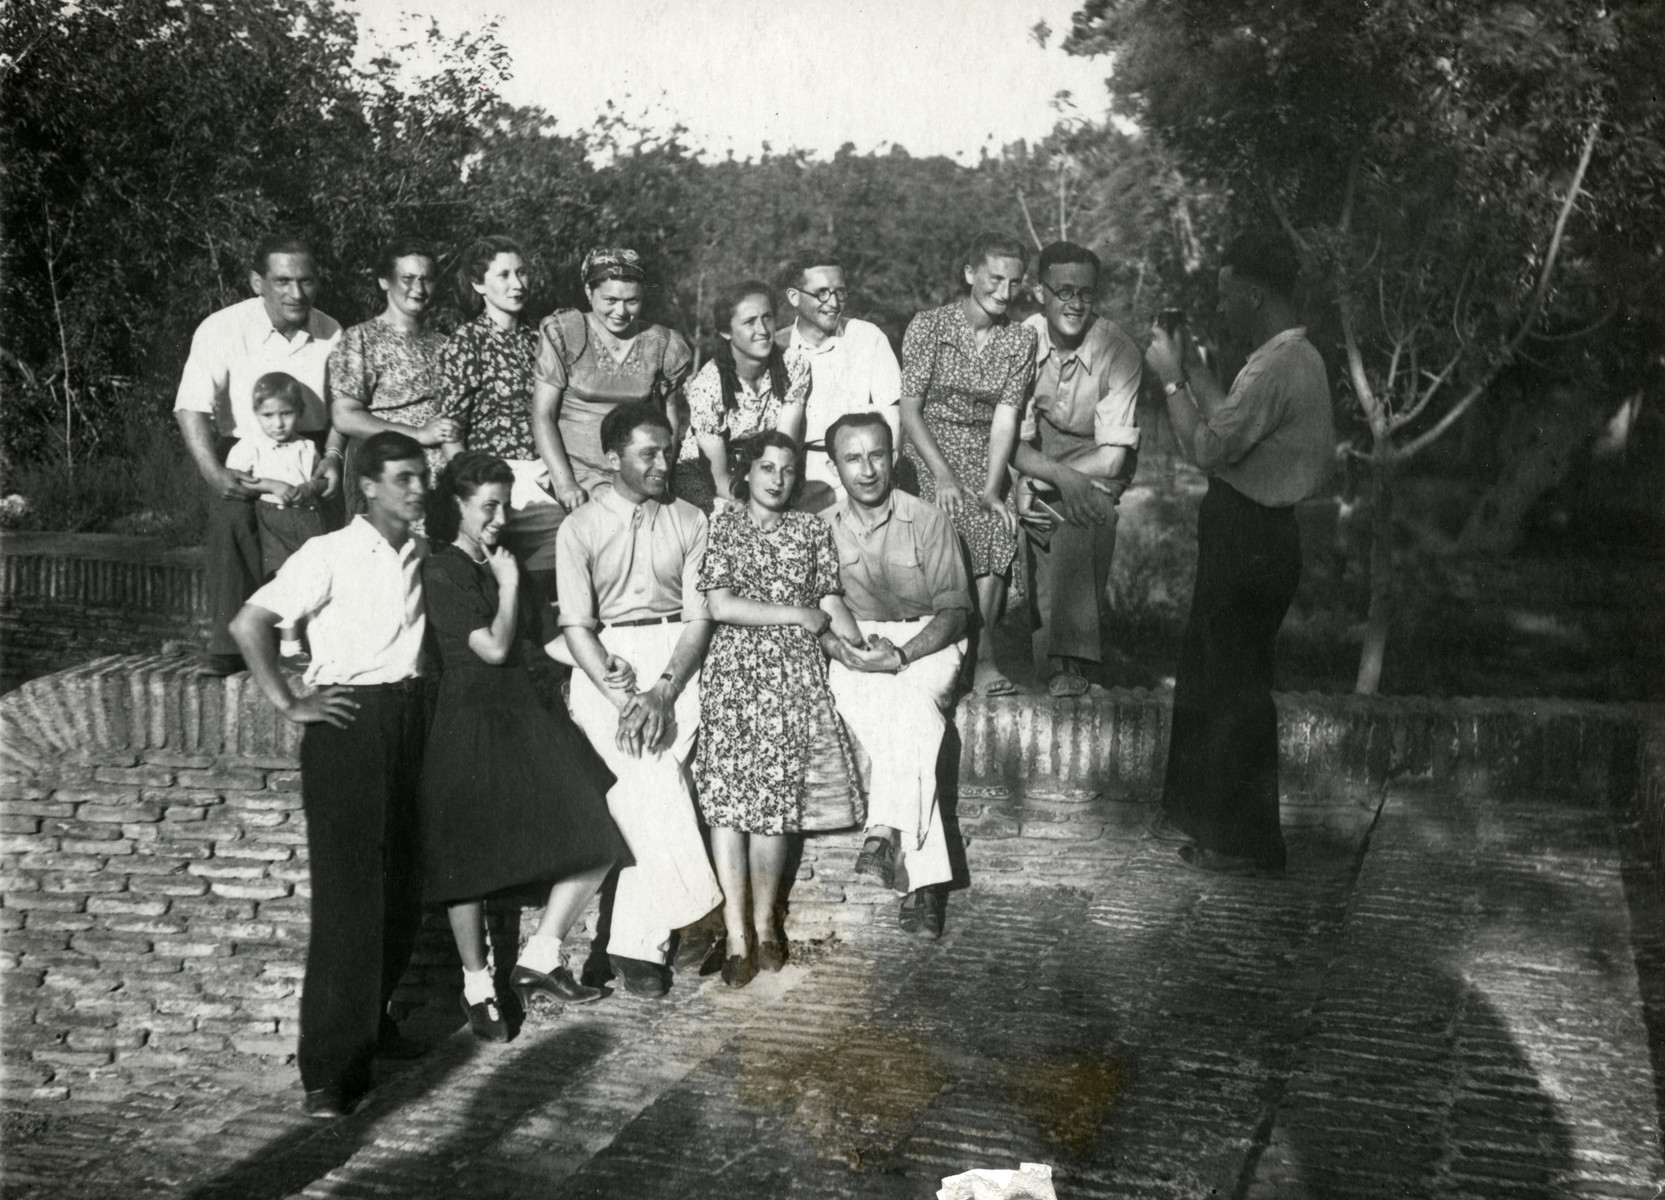 Polish Jewish refugees in Bukhara pose for a group photograph while on an outing.  Jonas, Benjamin are on the top left; Rywka is third from the left of the top.